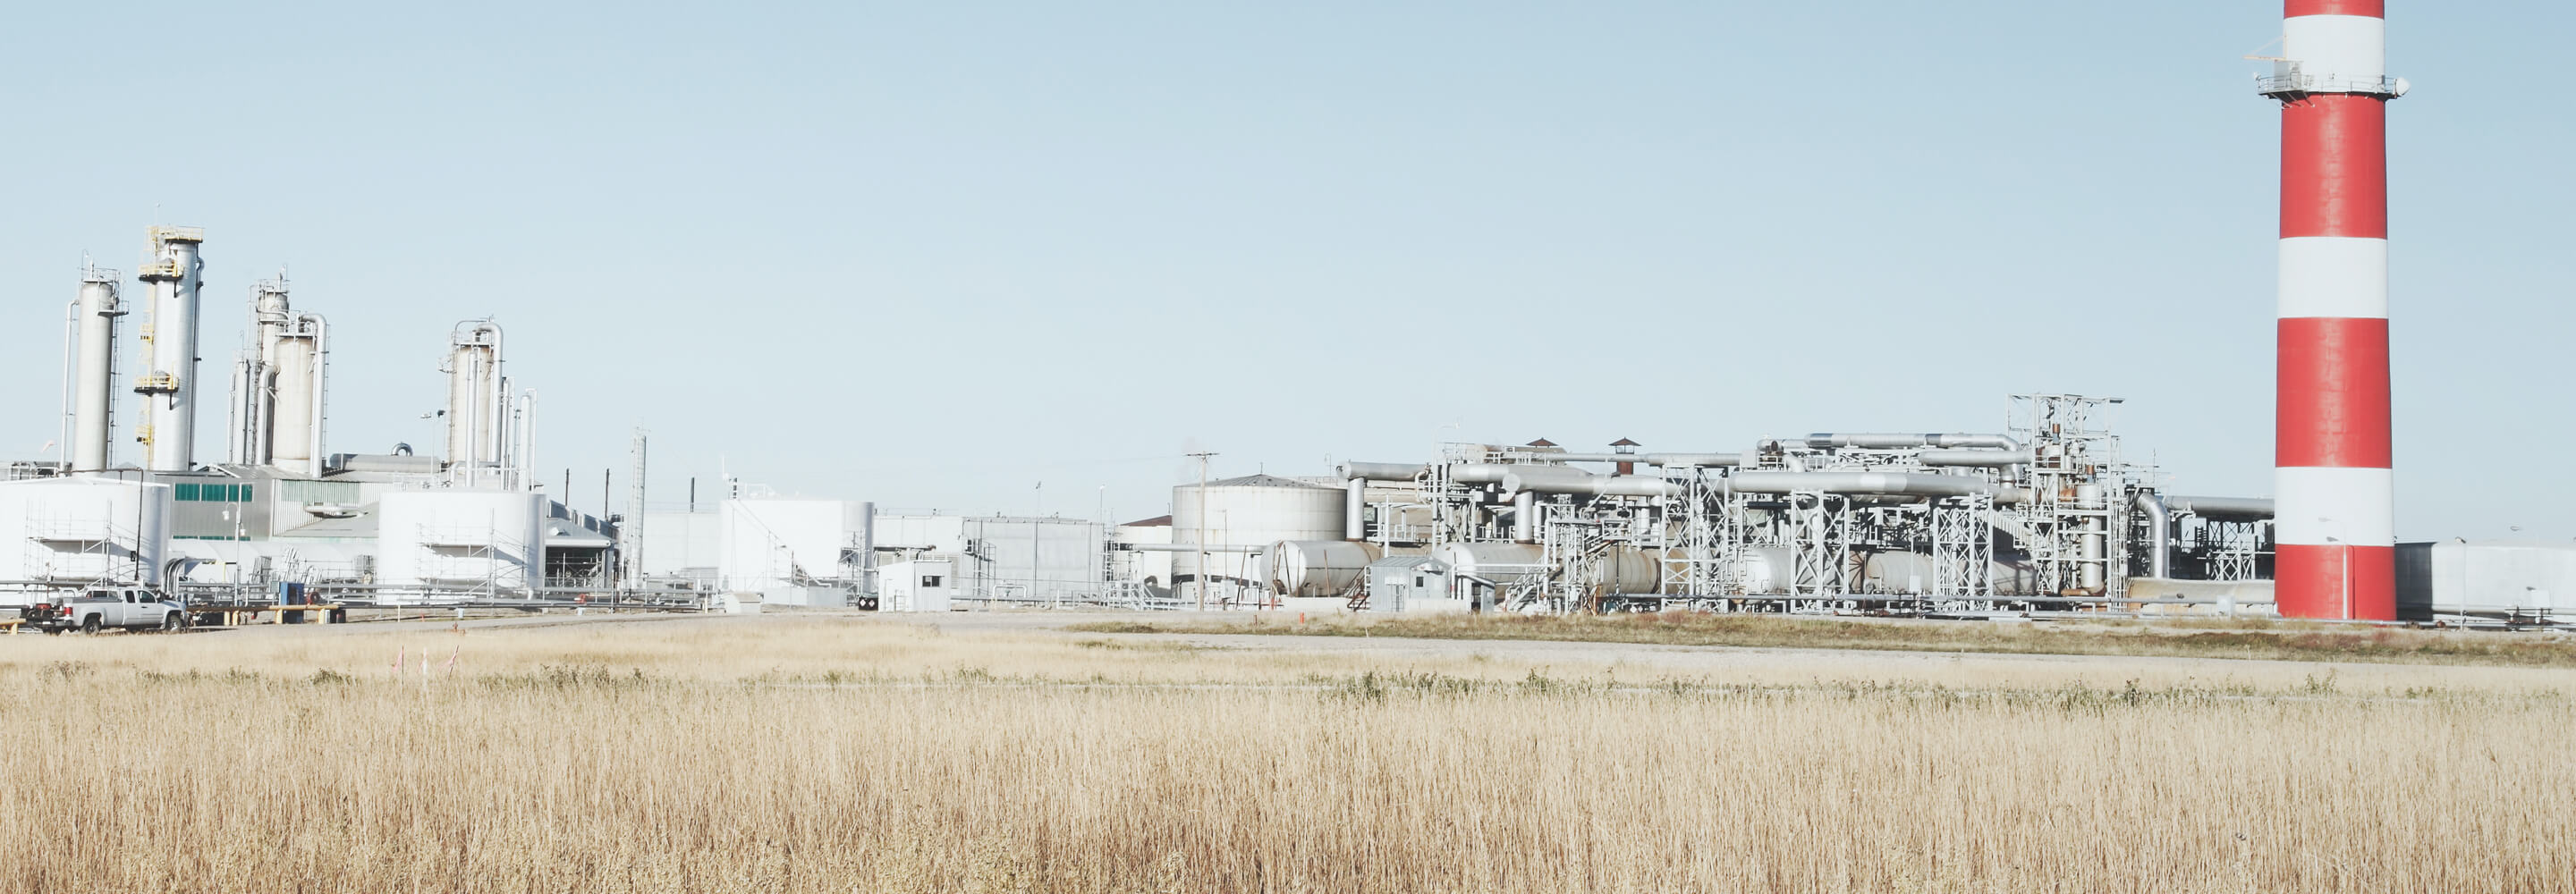 Oil-and-gas-plant-in-a-field